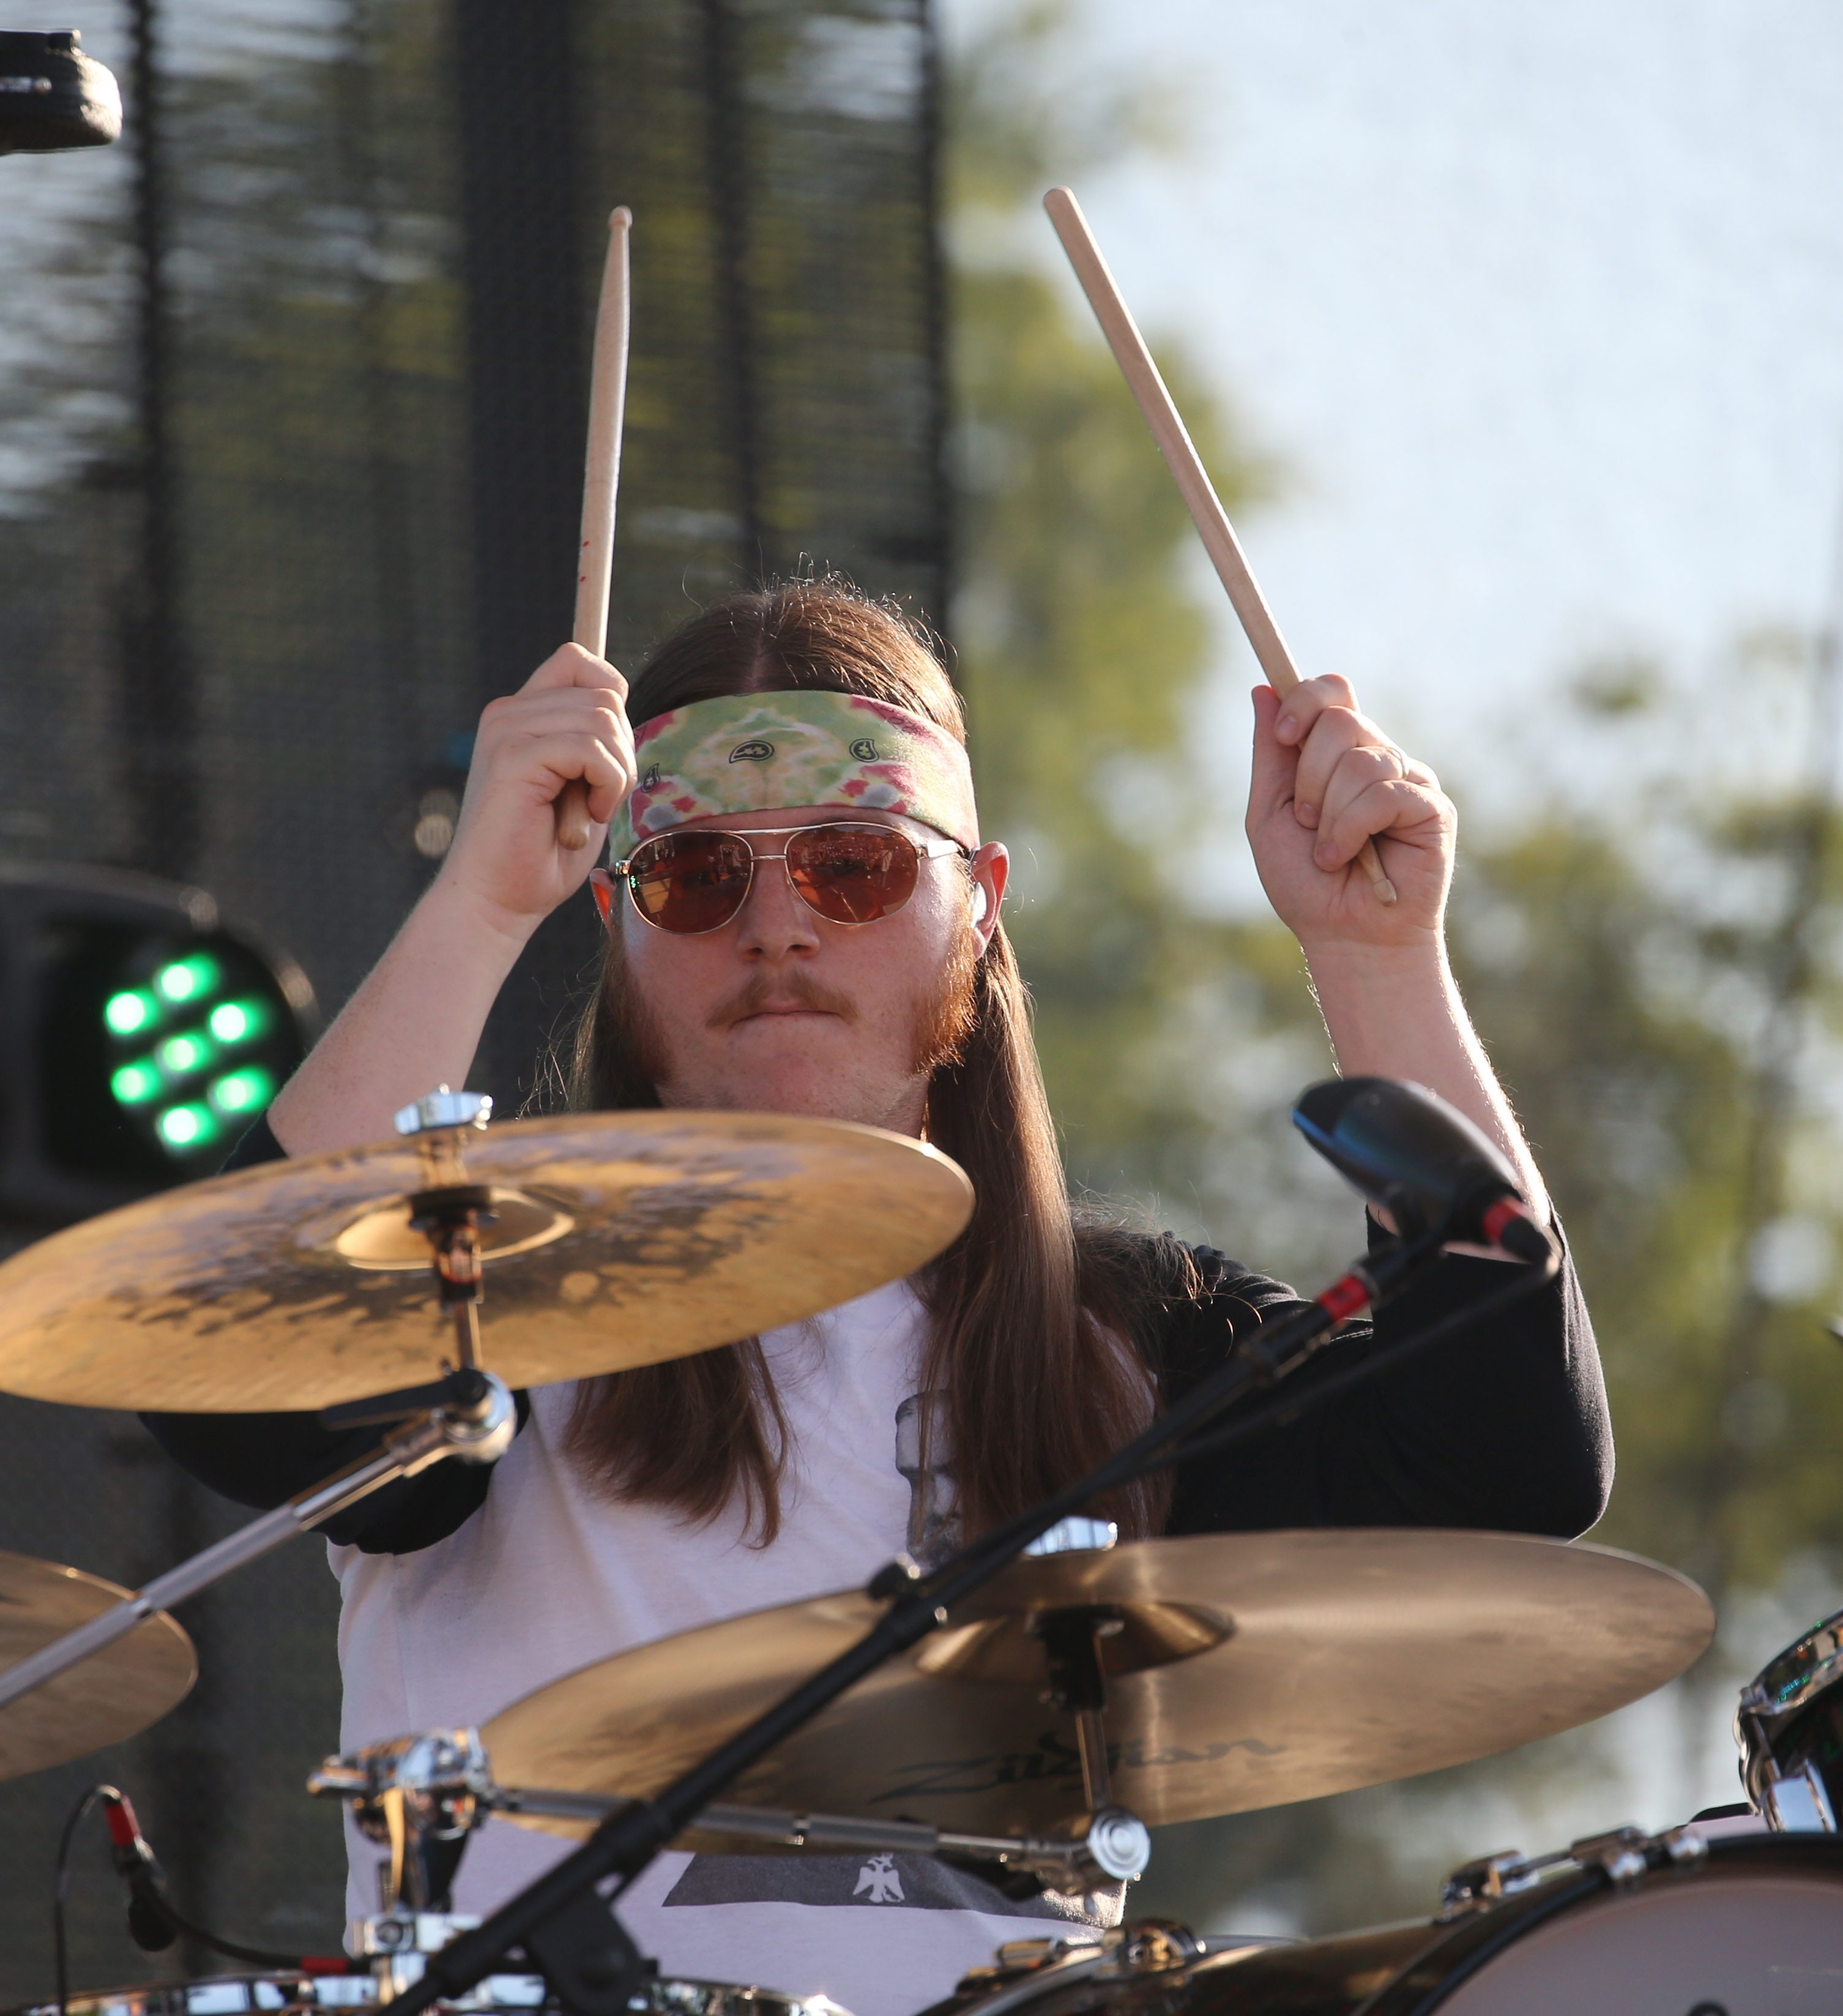 Duane Trucks performs on drums with jam band Widespread Panic as the Tuesdays at the Park concert series opened its 2015 season at Artpark in Lewiston. Photo gallery at buffalonews.com.